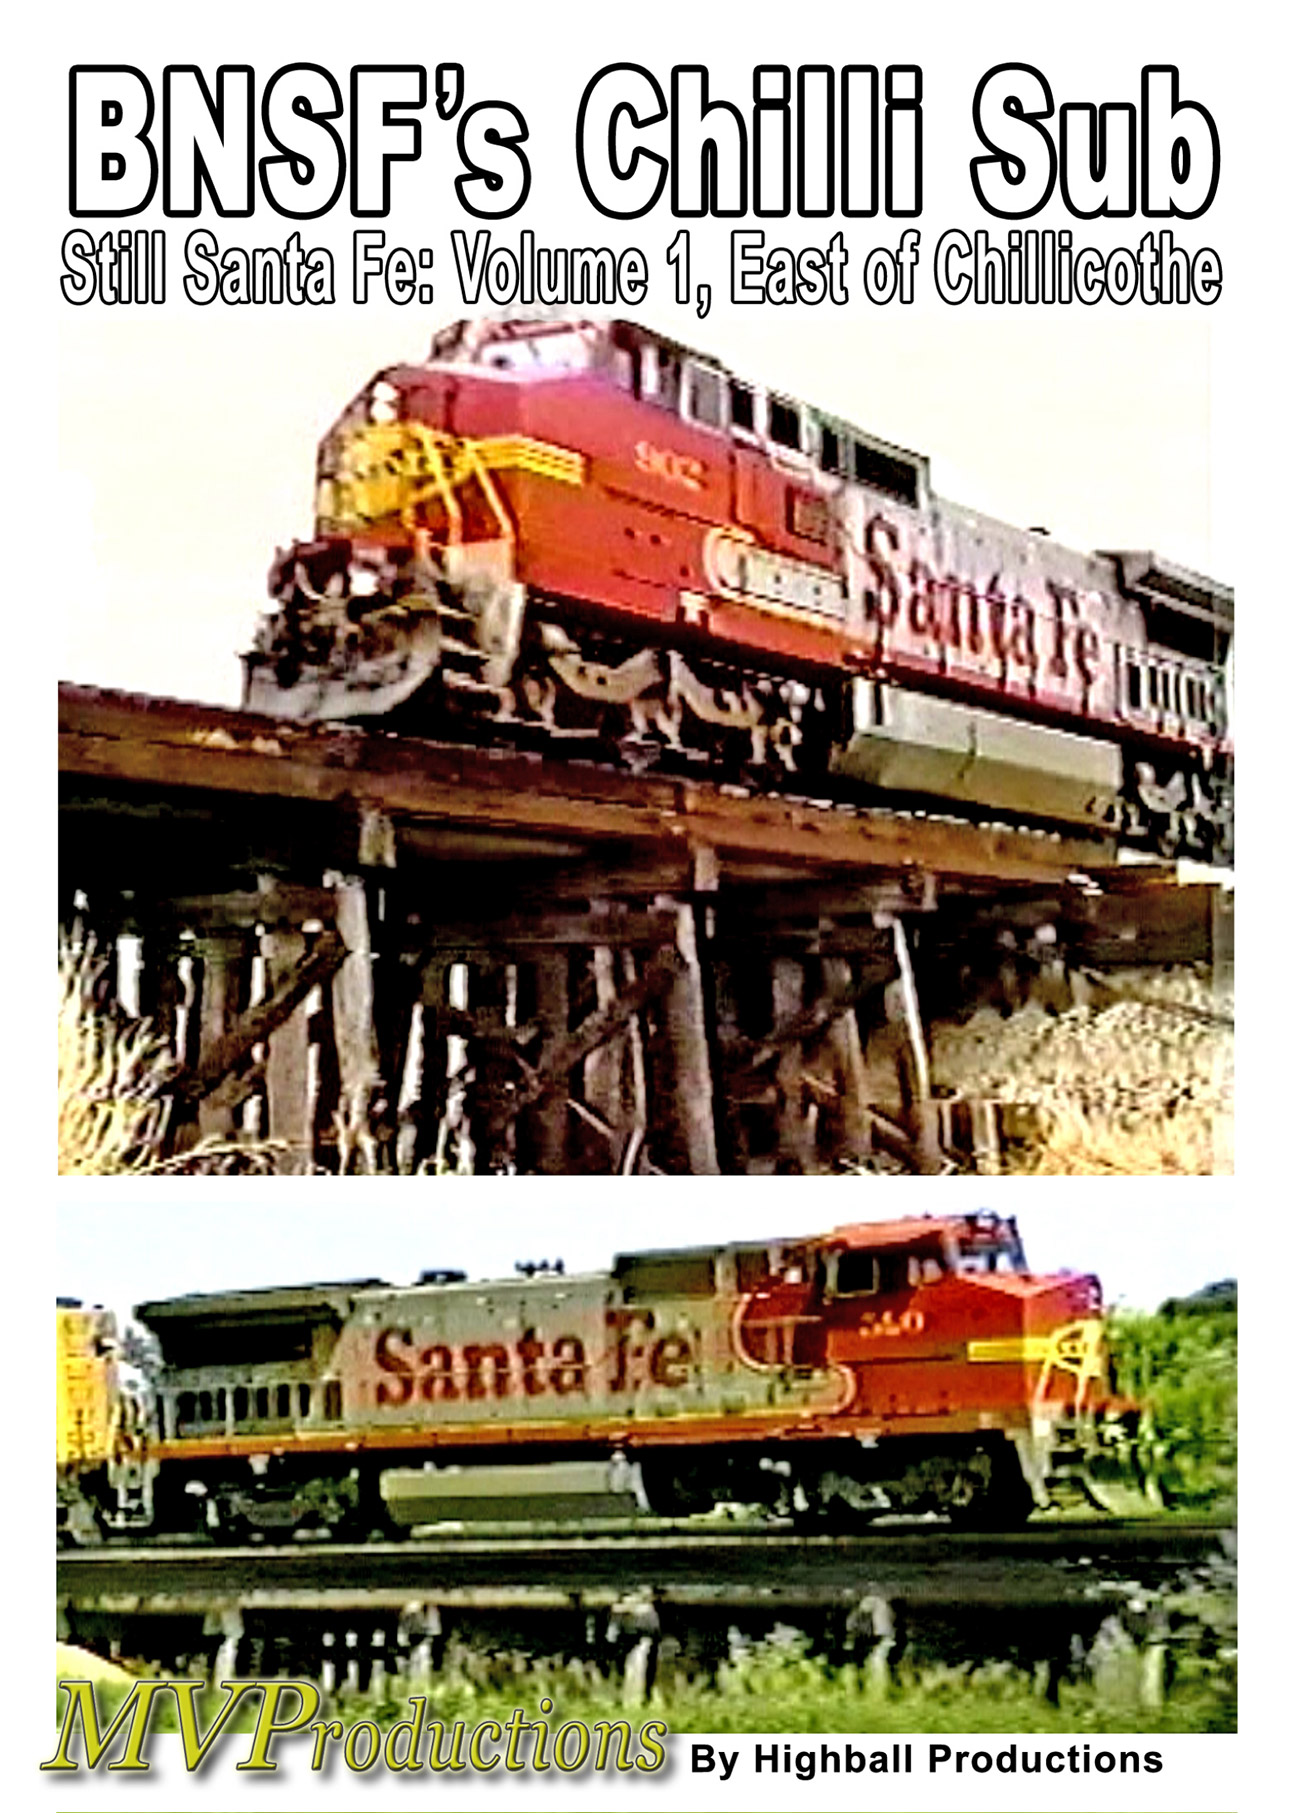 BNSF Chillicothe Sub: Still Santa Fe Volume 1, East of Chillicothe Midwest Video Productions MVCHIL1 601577880127